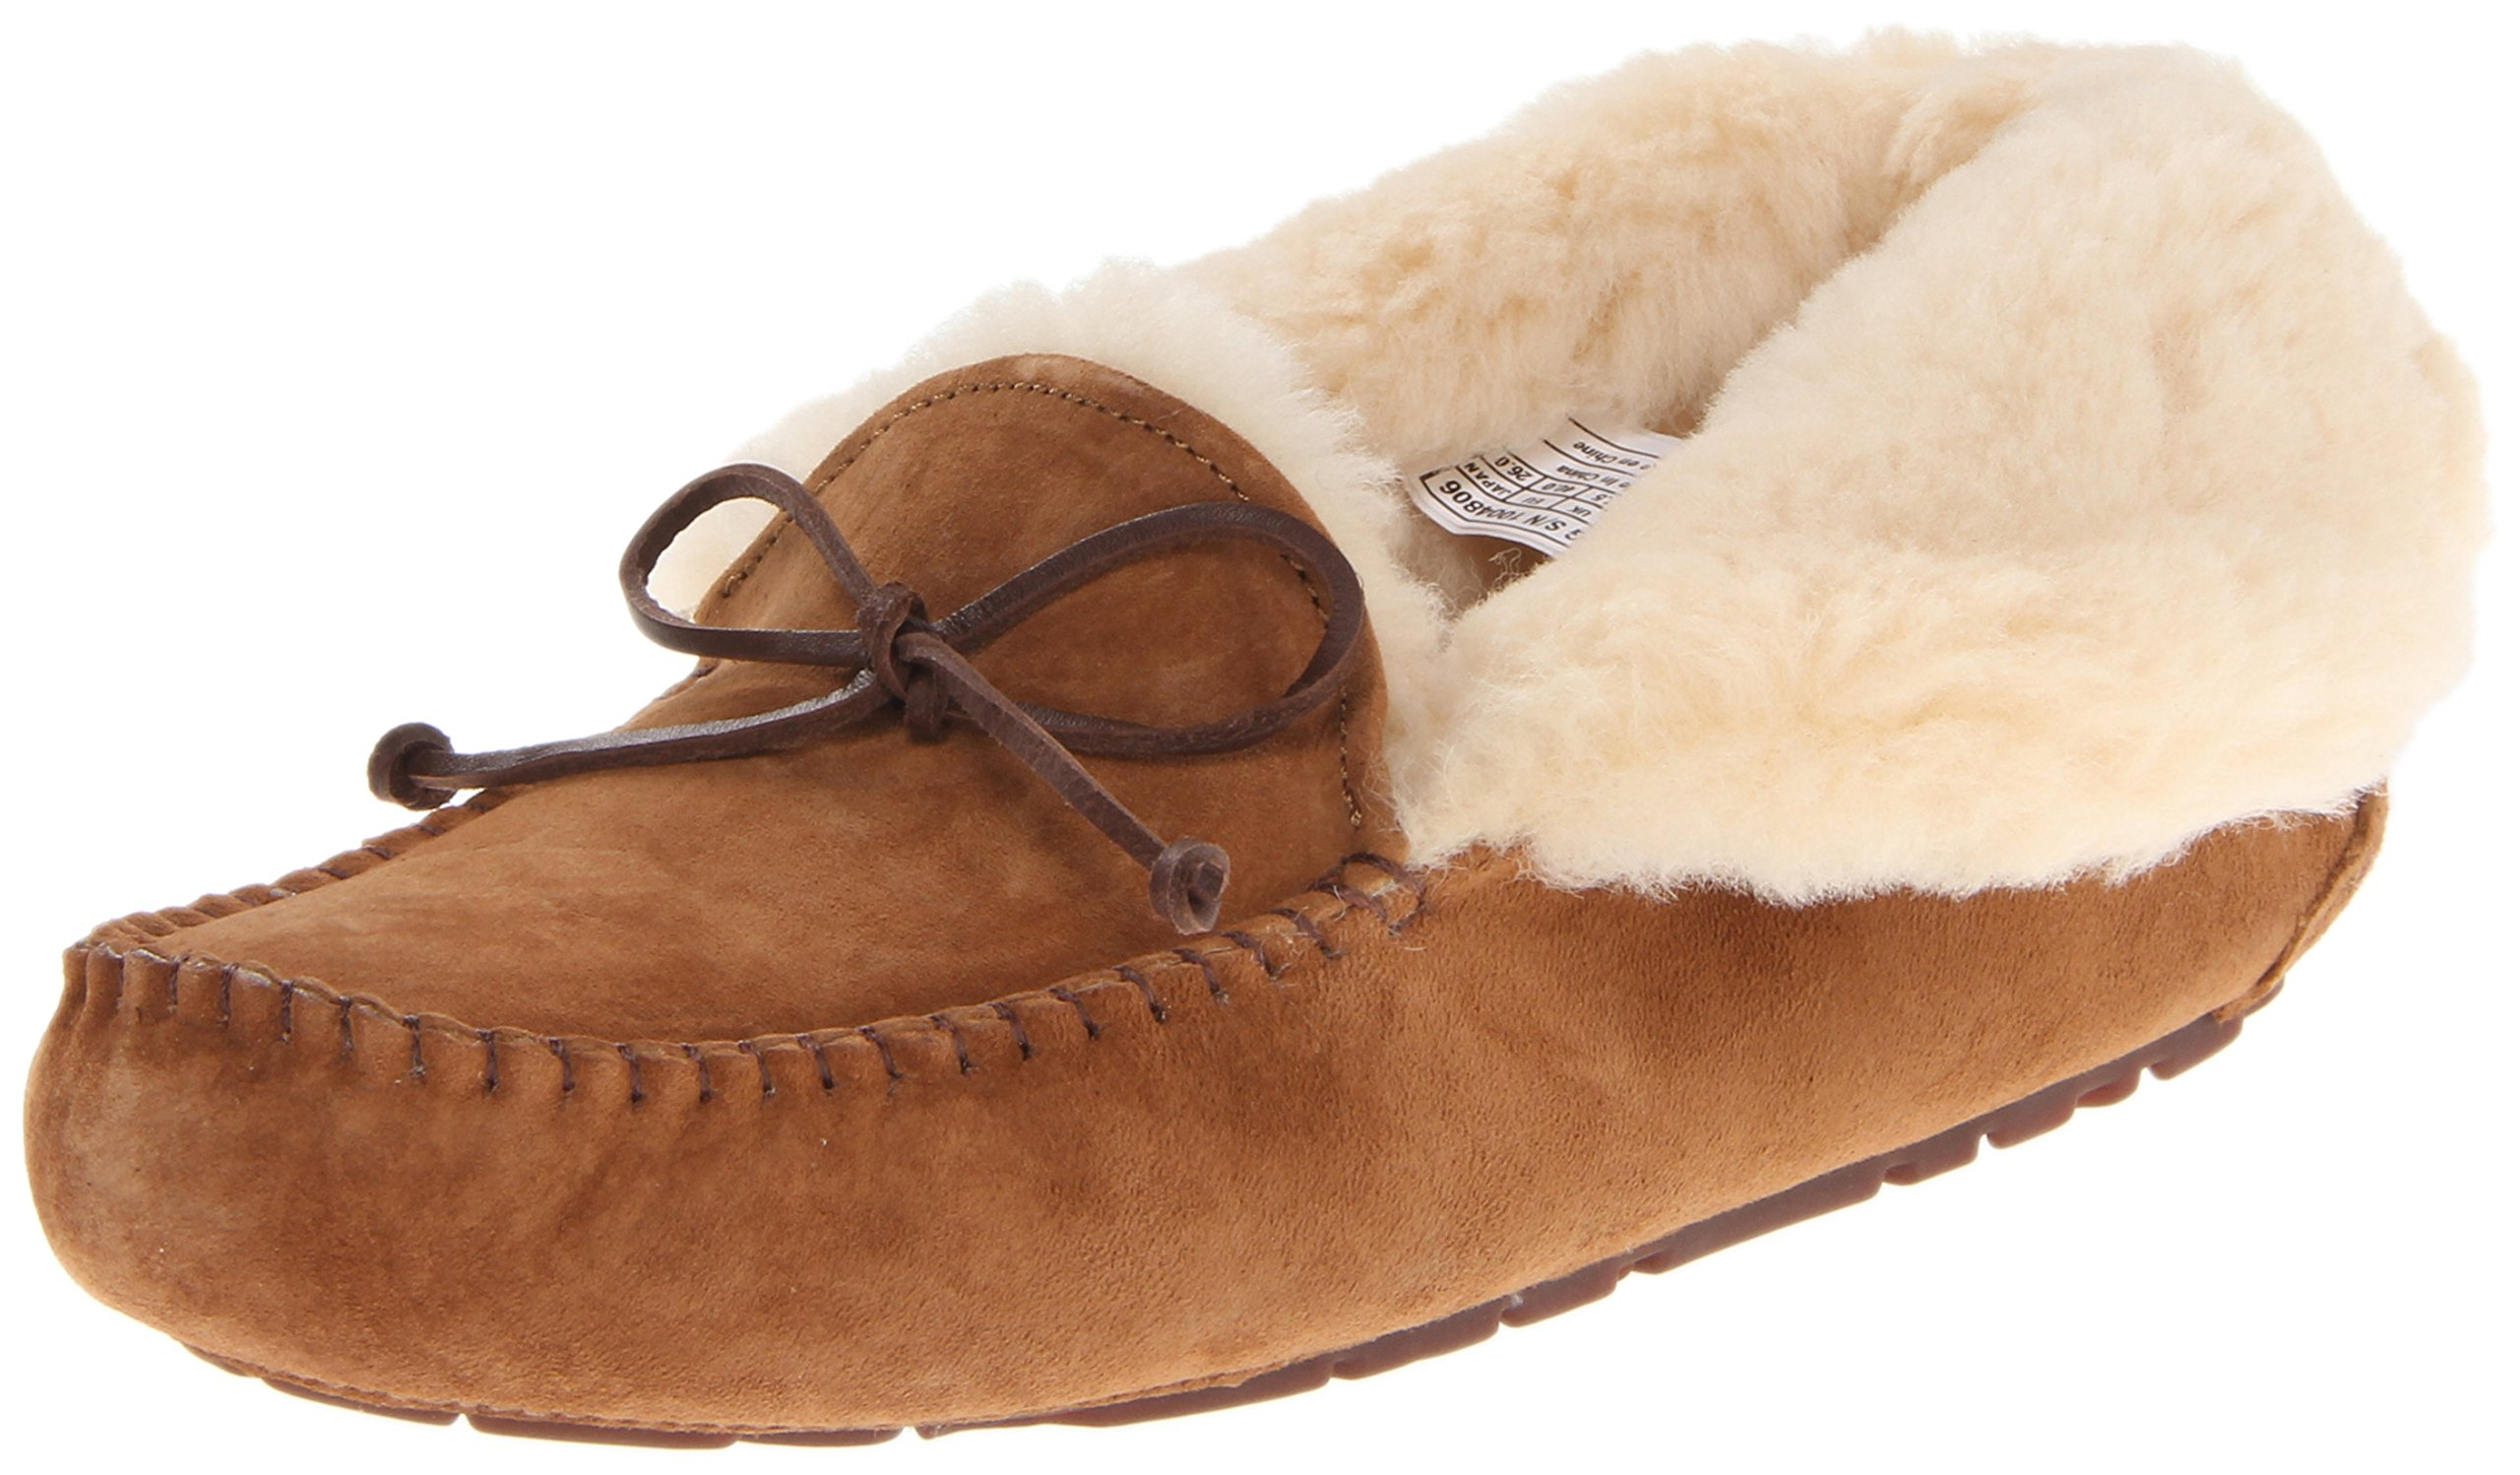 UGG Women's Alena Slipper, Chestnut, 8 B US